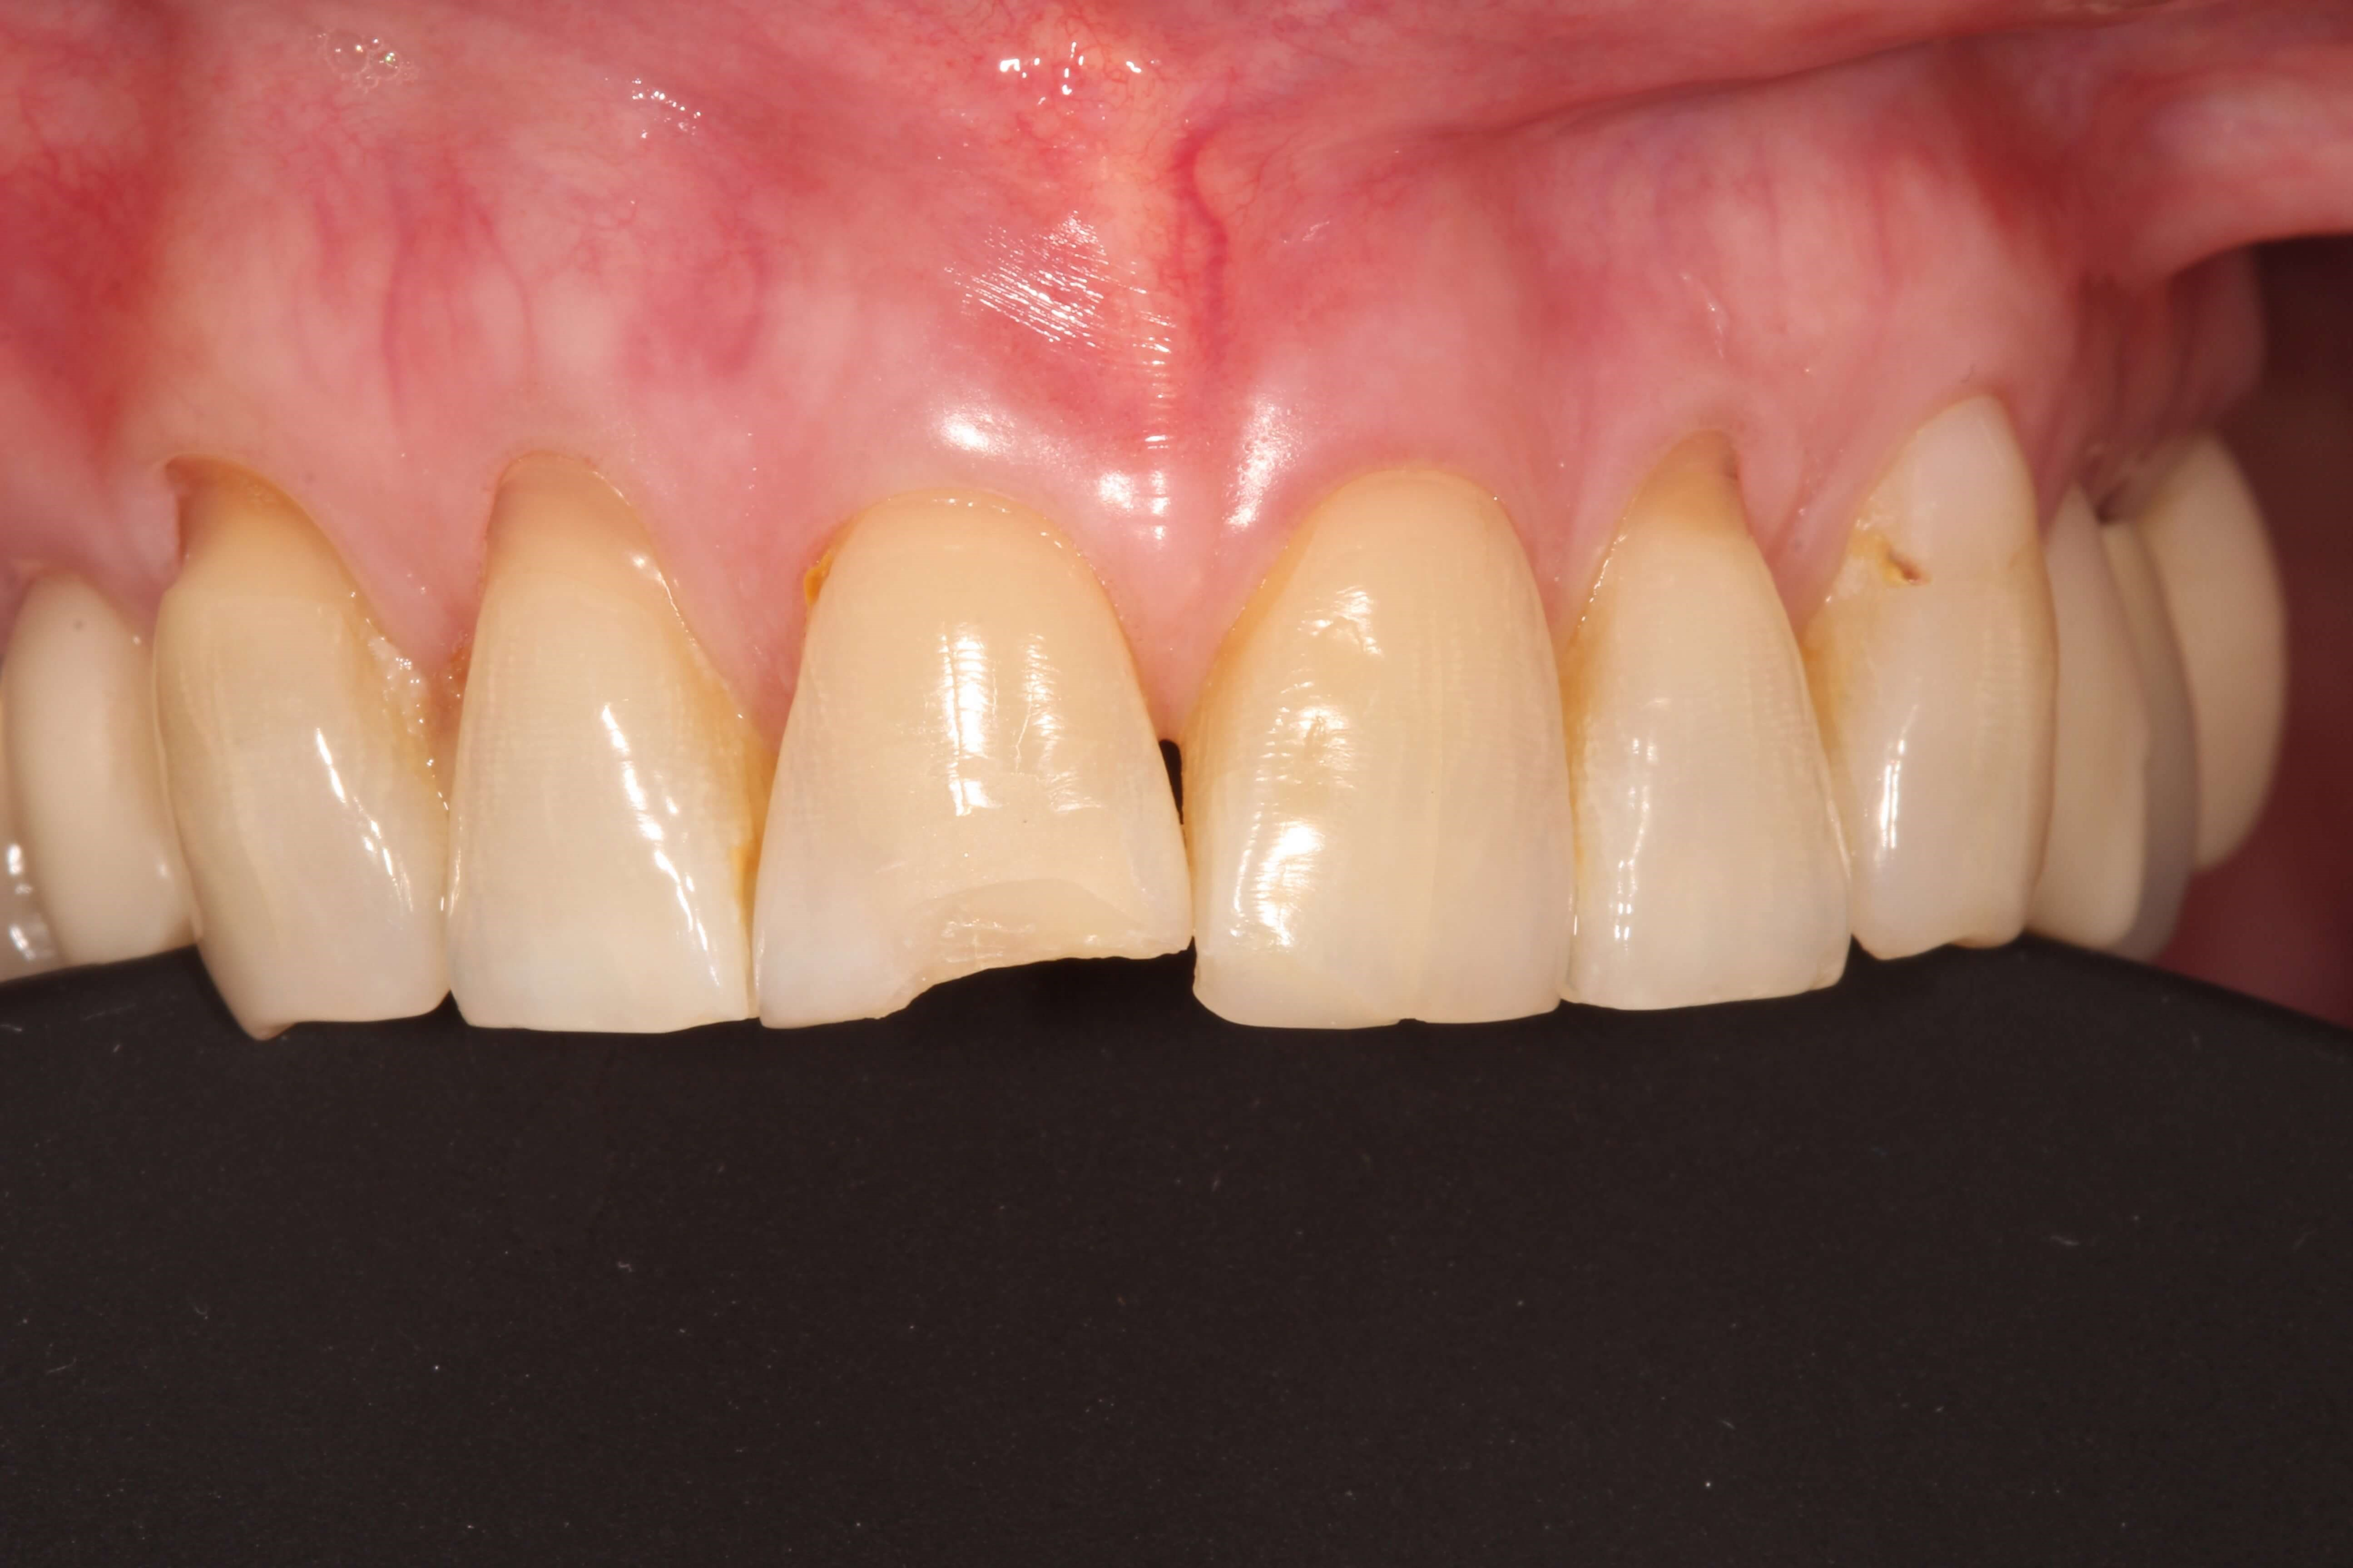 Chipped Front Tooth bonded Before